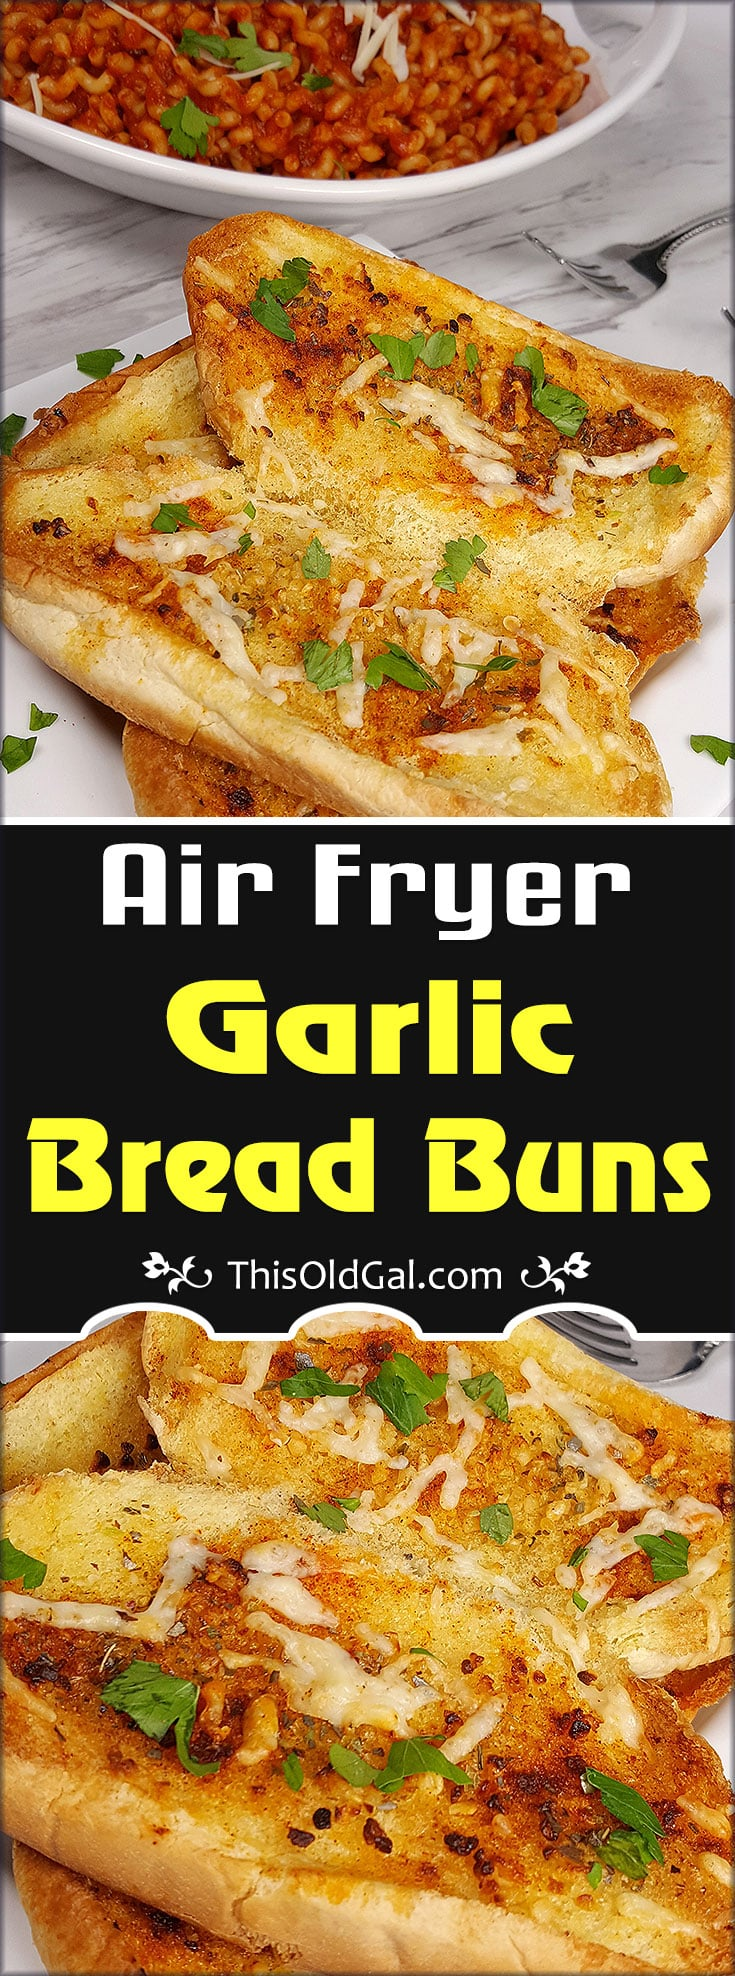 Air Fryer Italian Garlic Bread Buns